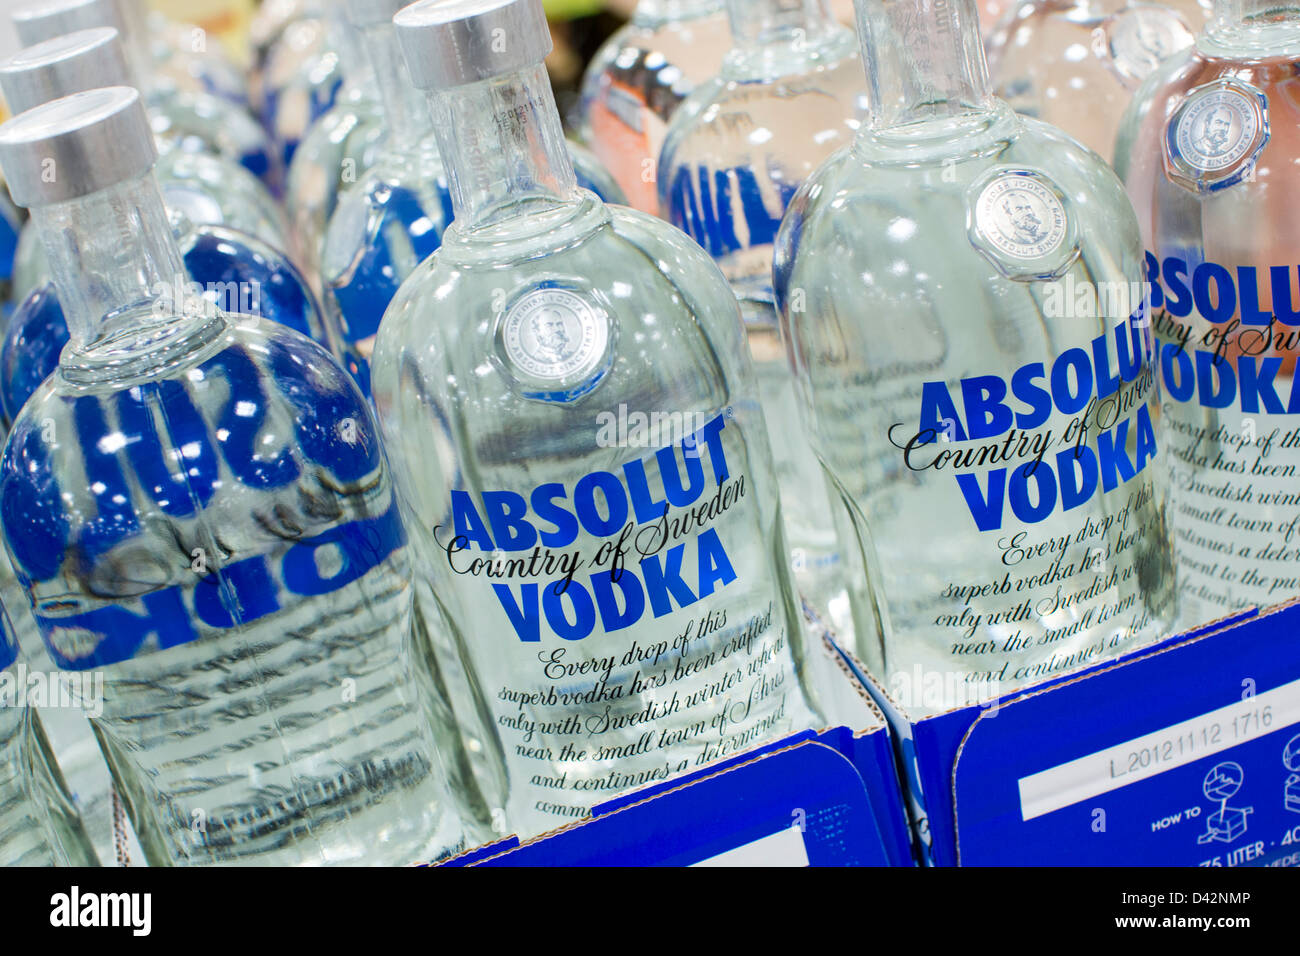 Absolut vodka on display at a costco wholesale warehouse club stock absolut vodka on display at a costco wholesale warehouse club thecheapjerseys Images